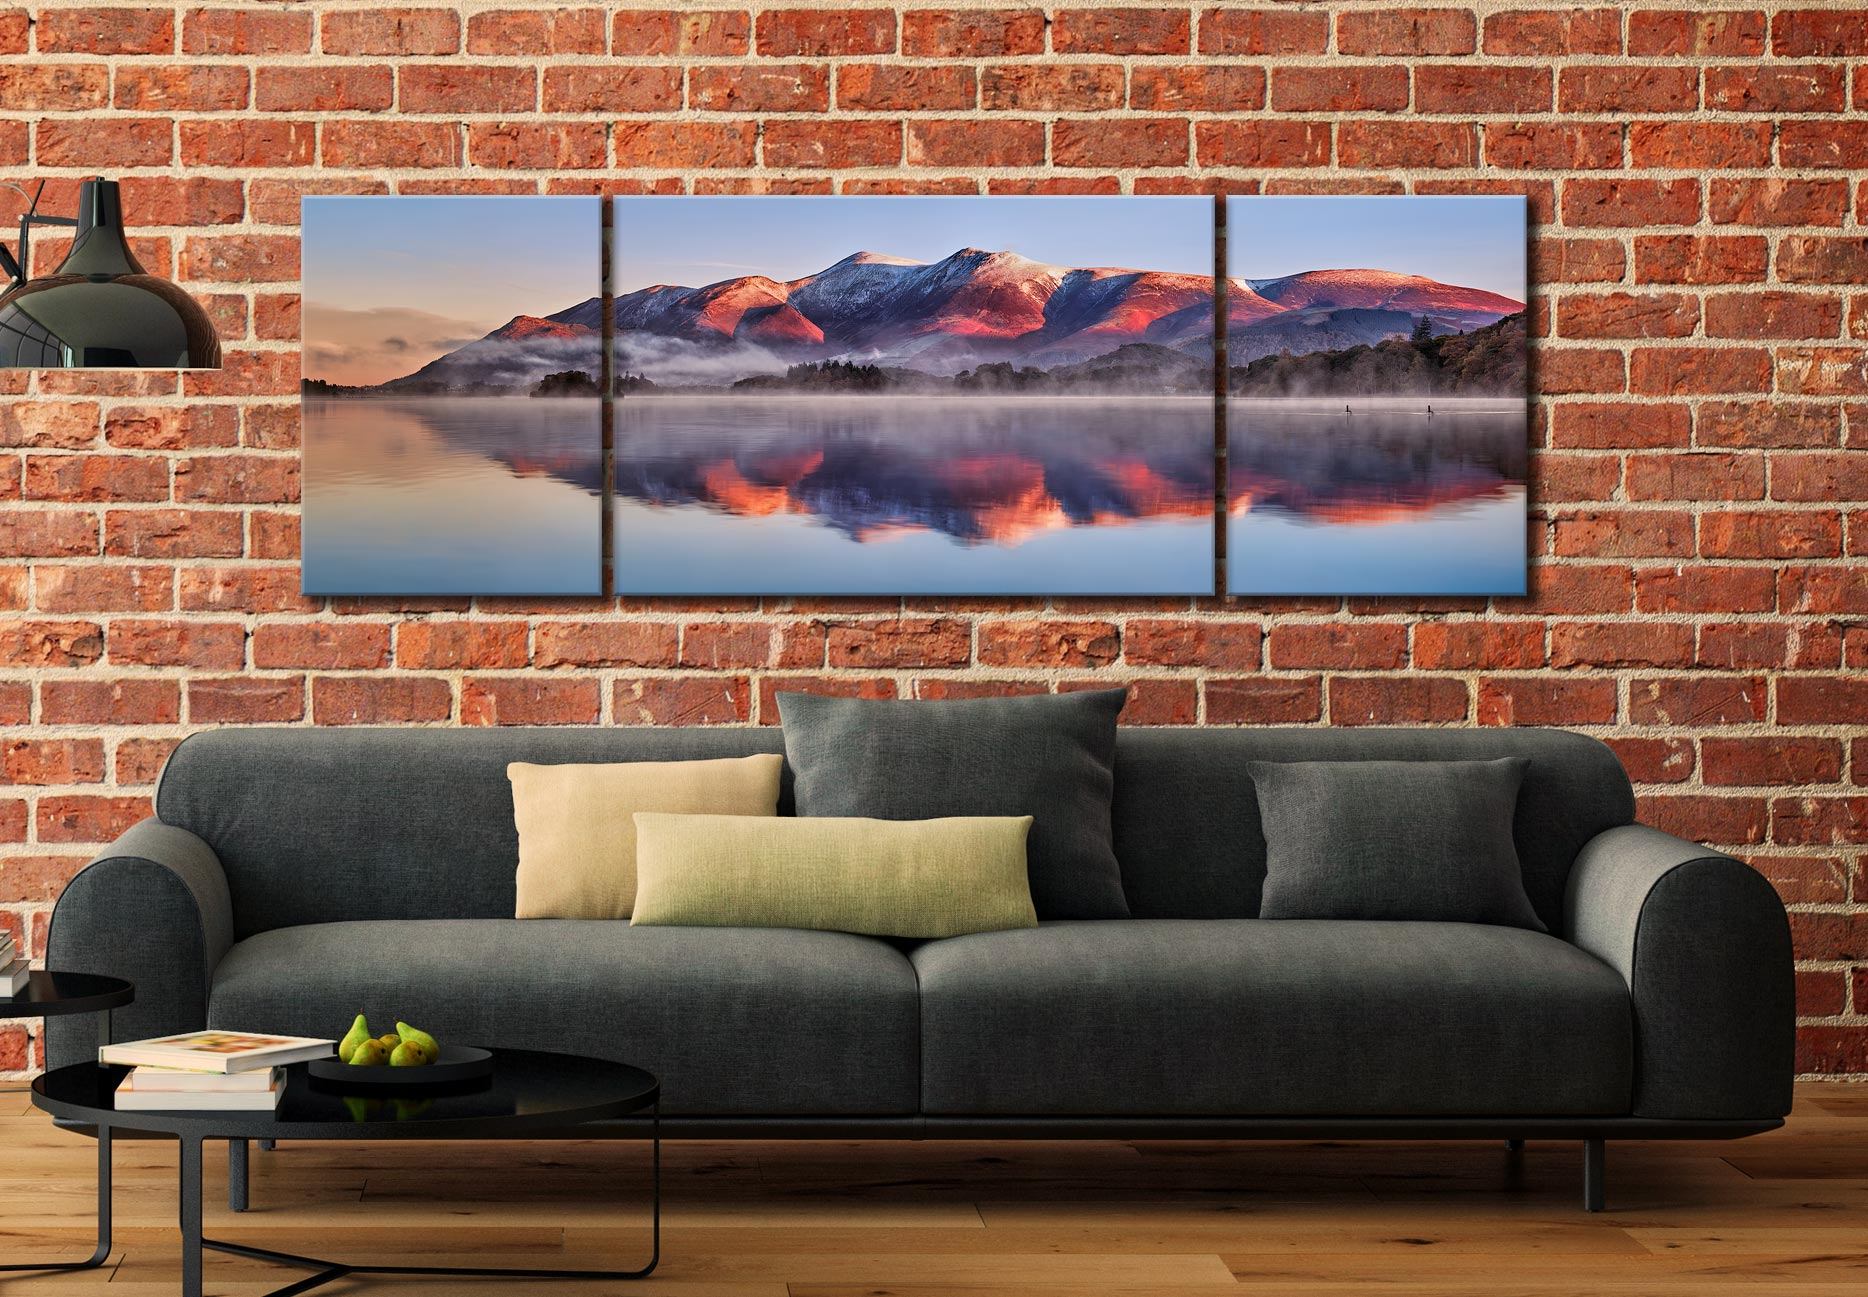 Skiddaw Reflection - 3 Panel Wide Mid Canvas on Wall